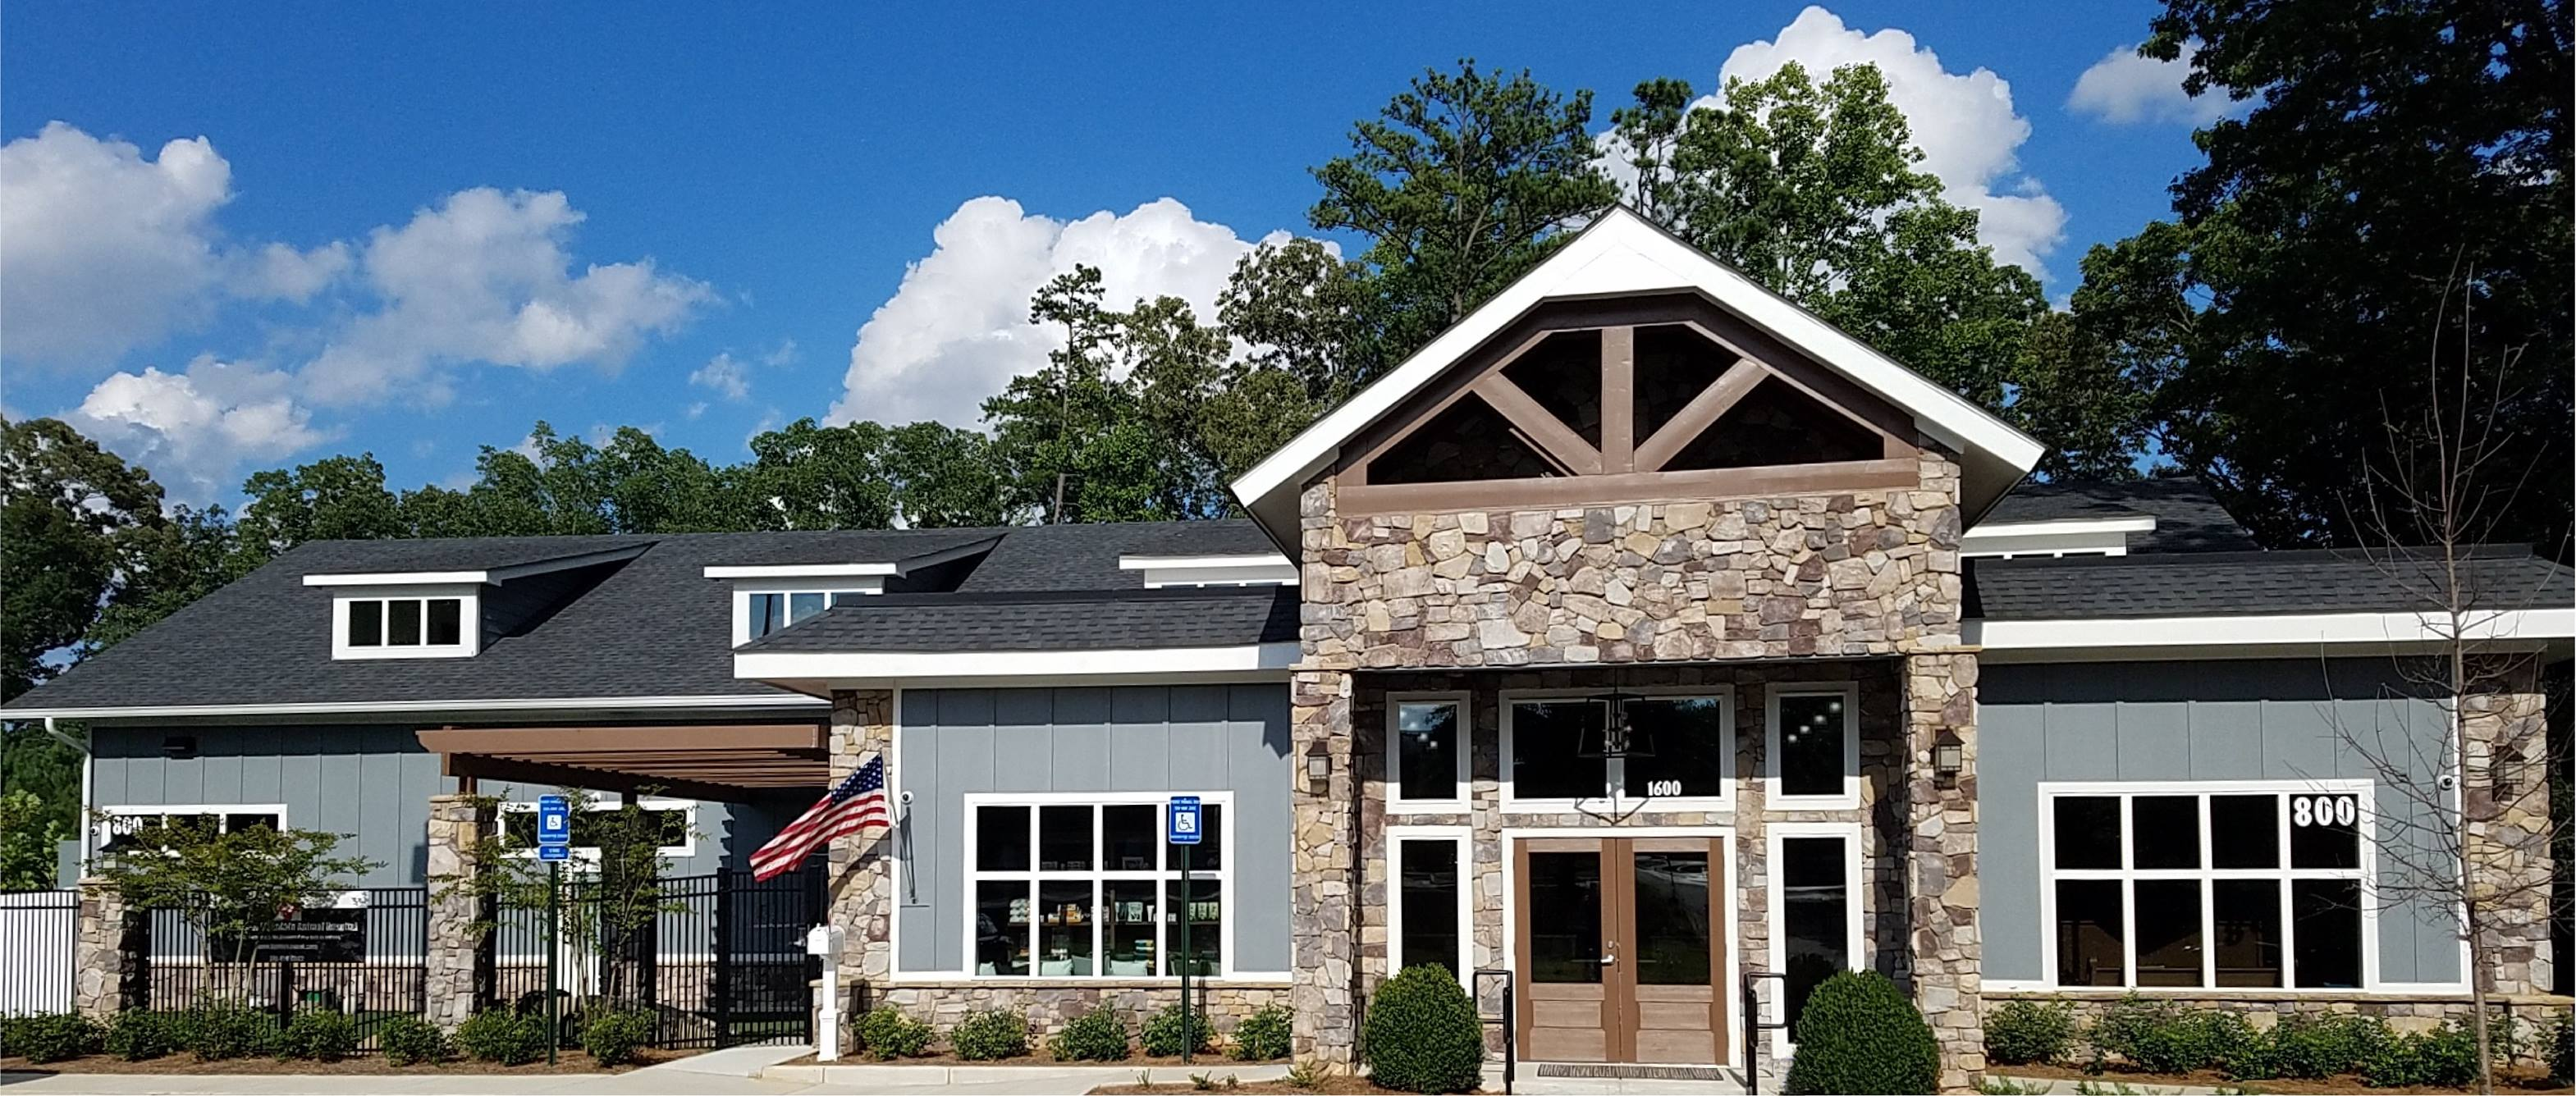 The Kennesaw Mountain Animal Hospital facility